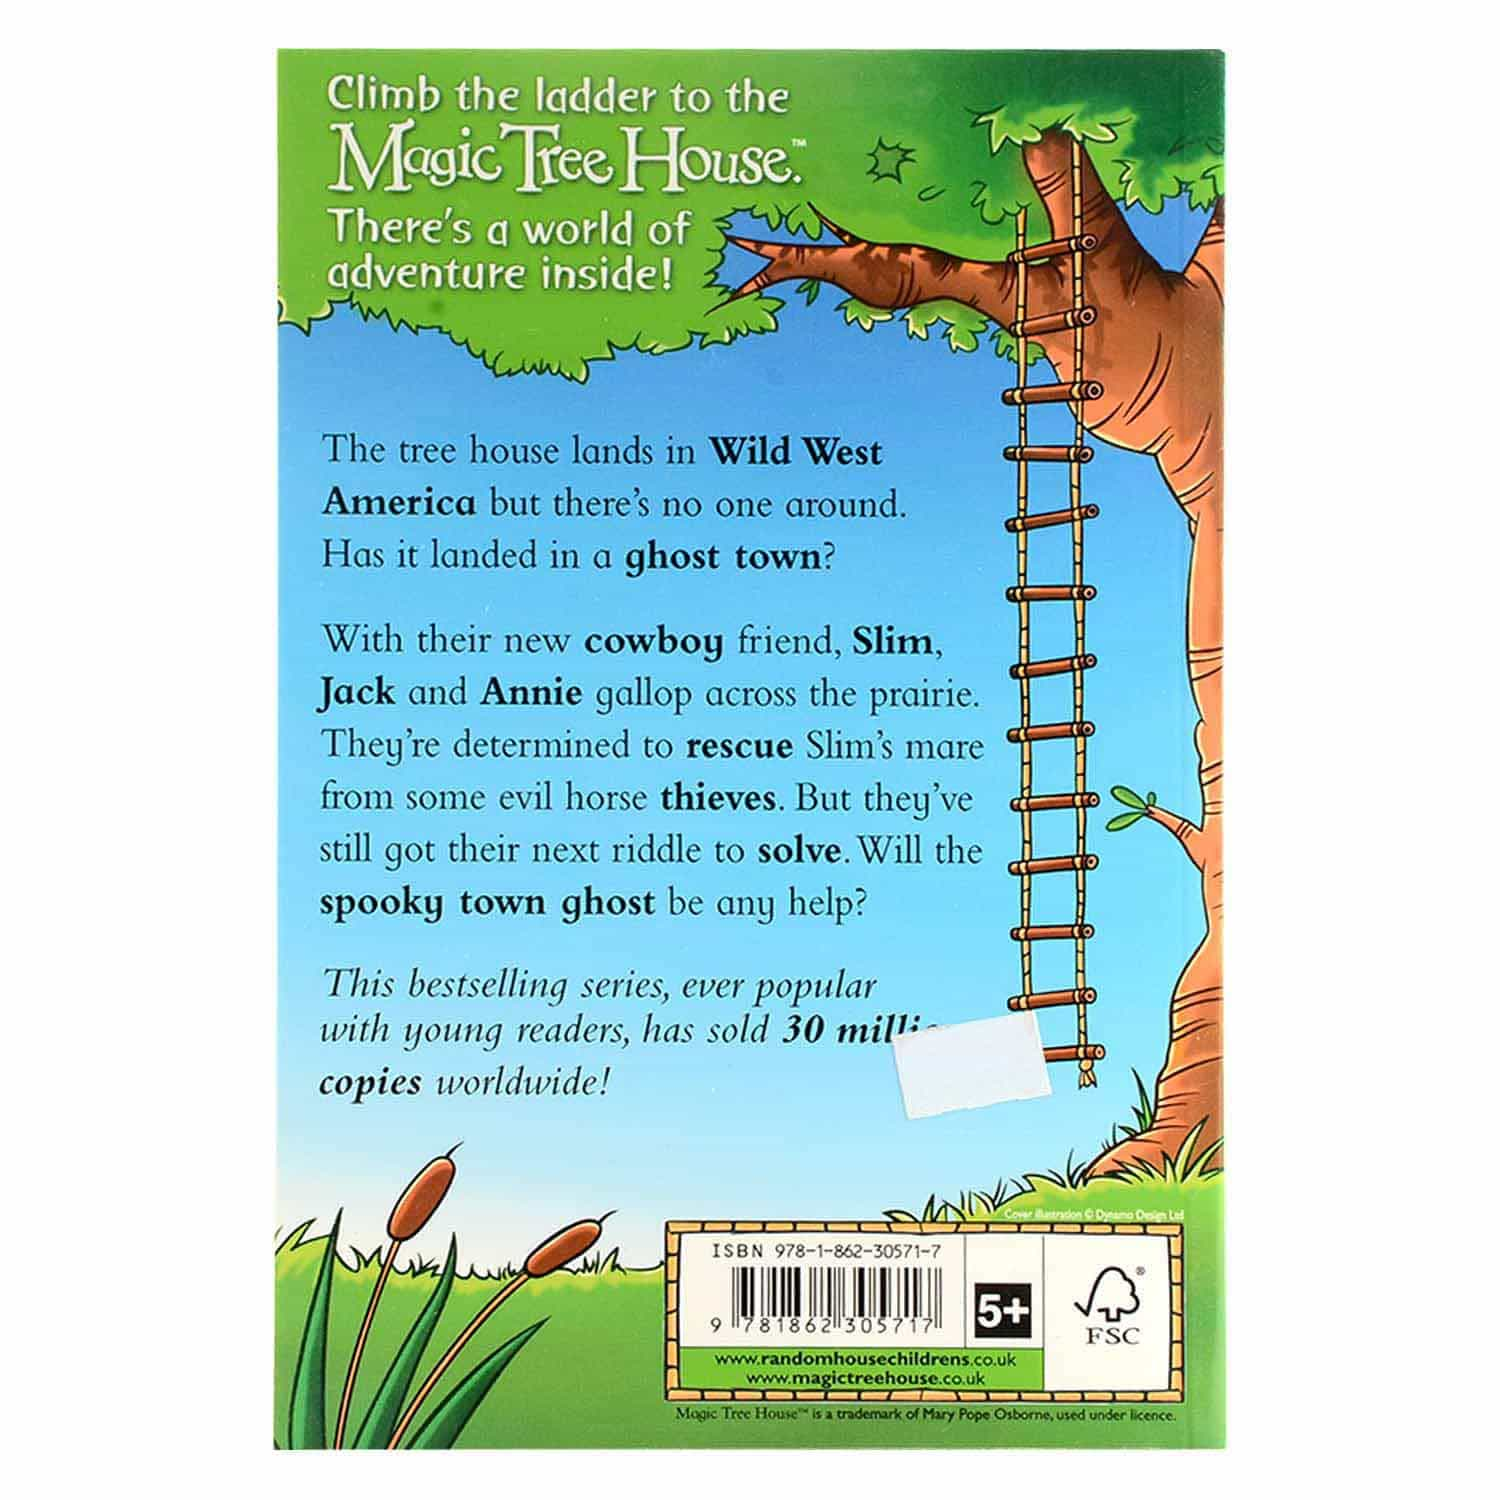 Magic Tree House Series - A Wild West Ride